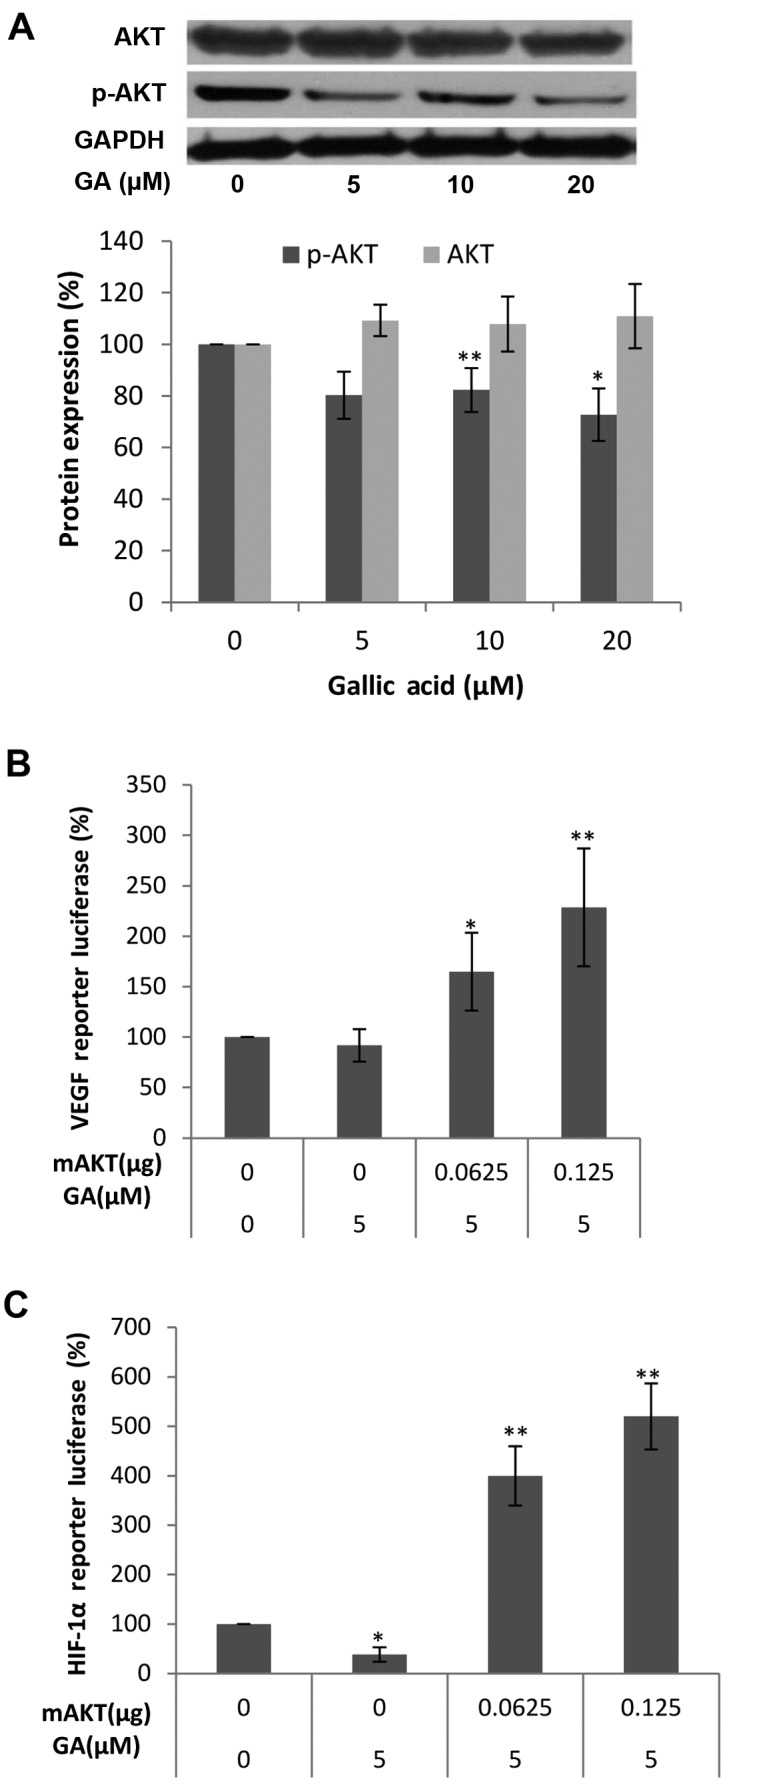 The effect of gallic acid (GA) on p-AKT and AKT protein expression in OVCAR-3 cells and luciferase assay after transfection with mAKT plasmids and VEGF luciferase reporter or HIF-1α luciferase reporter. (A) GA decreases p-AKT protein expression in OVCAR-3 cells. Data represents mean ± SE from 5 independent experiment. (B) mAKT mediates the inhibitory effects of GA on VEGF expression in ovarian cancer cells. Data represents mean ± SE from 8 independent experiment. (C) mAKT mediates the inhibitory effects of GA on HIF-1α expression in ovarian cancer cells. Data represents mean ± SE from 4 independent experiments. * P